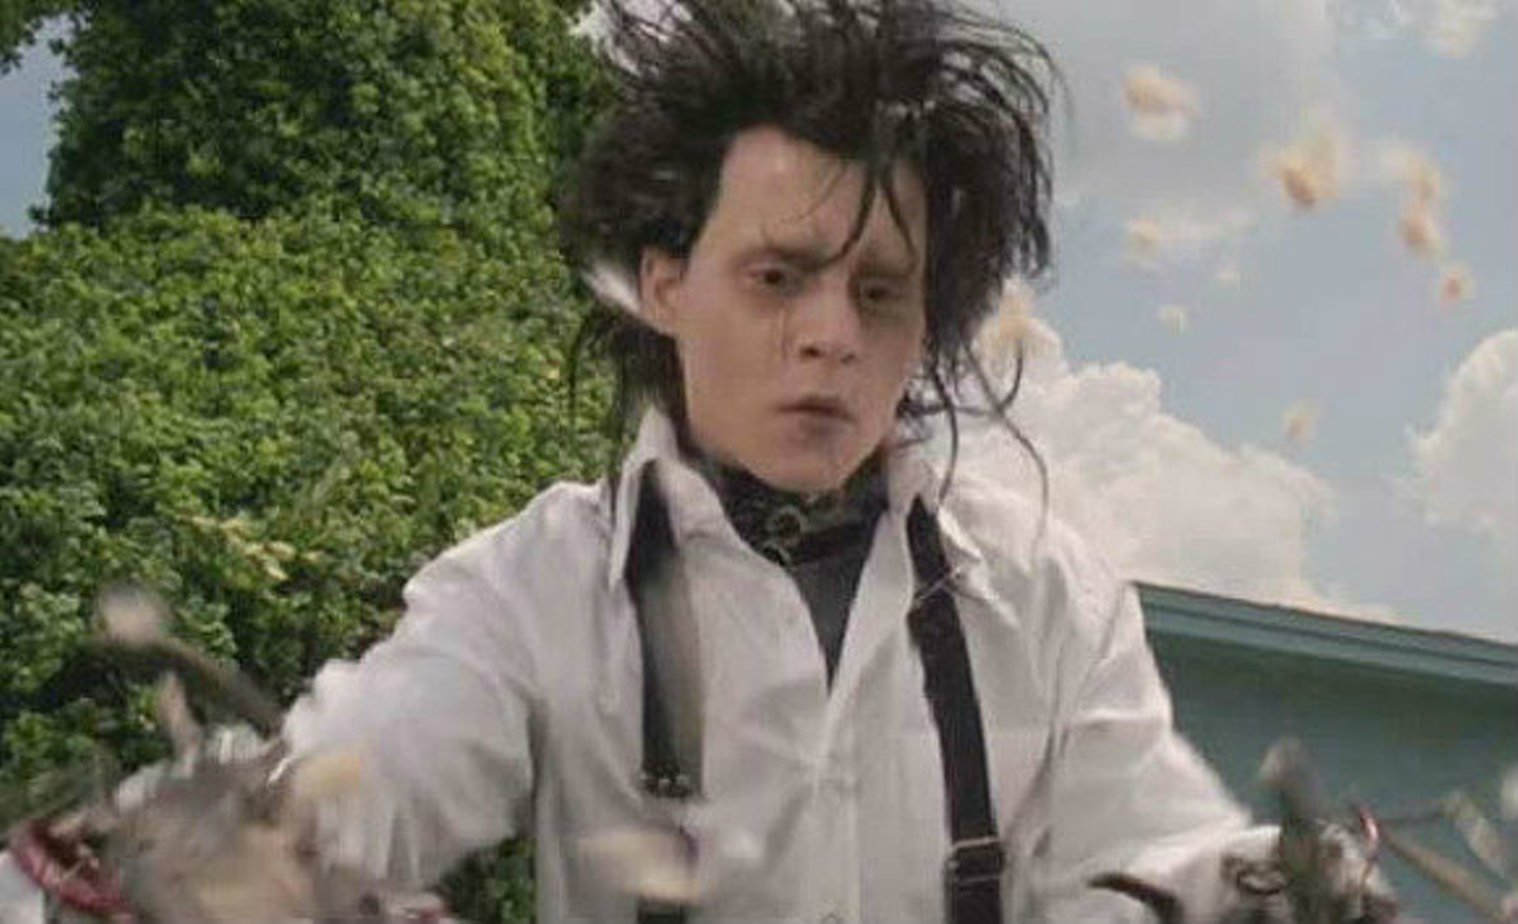 edward scissorhands isolation essay Low key is another that he uses it is used to flood the scene with darkness and shadows to show isolation  for example in edward scissorhands when anti essays.